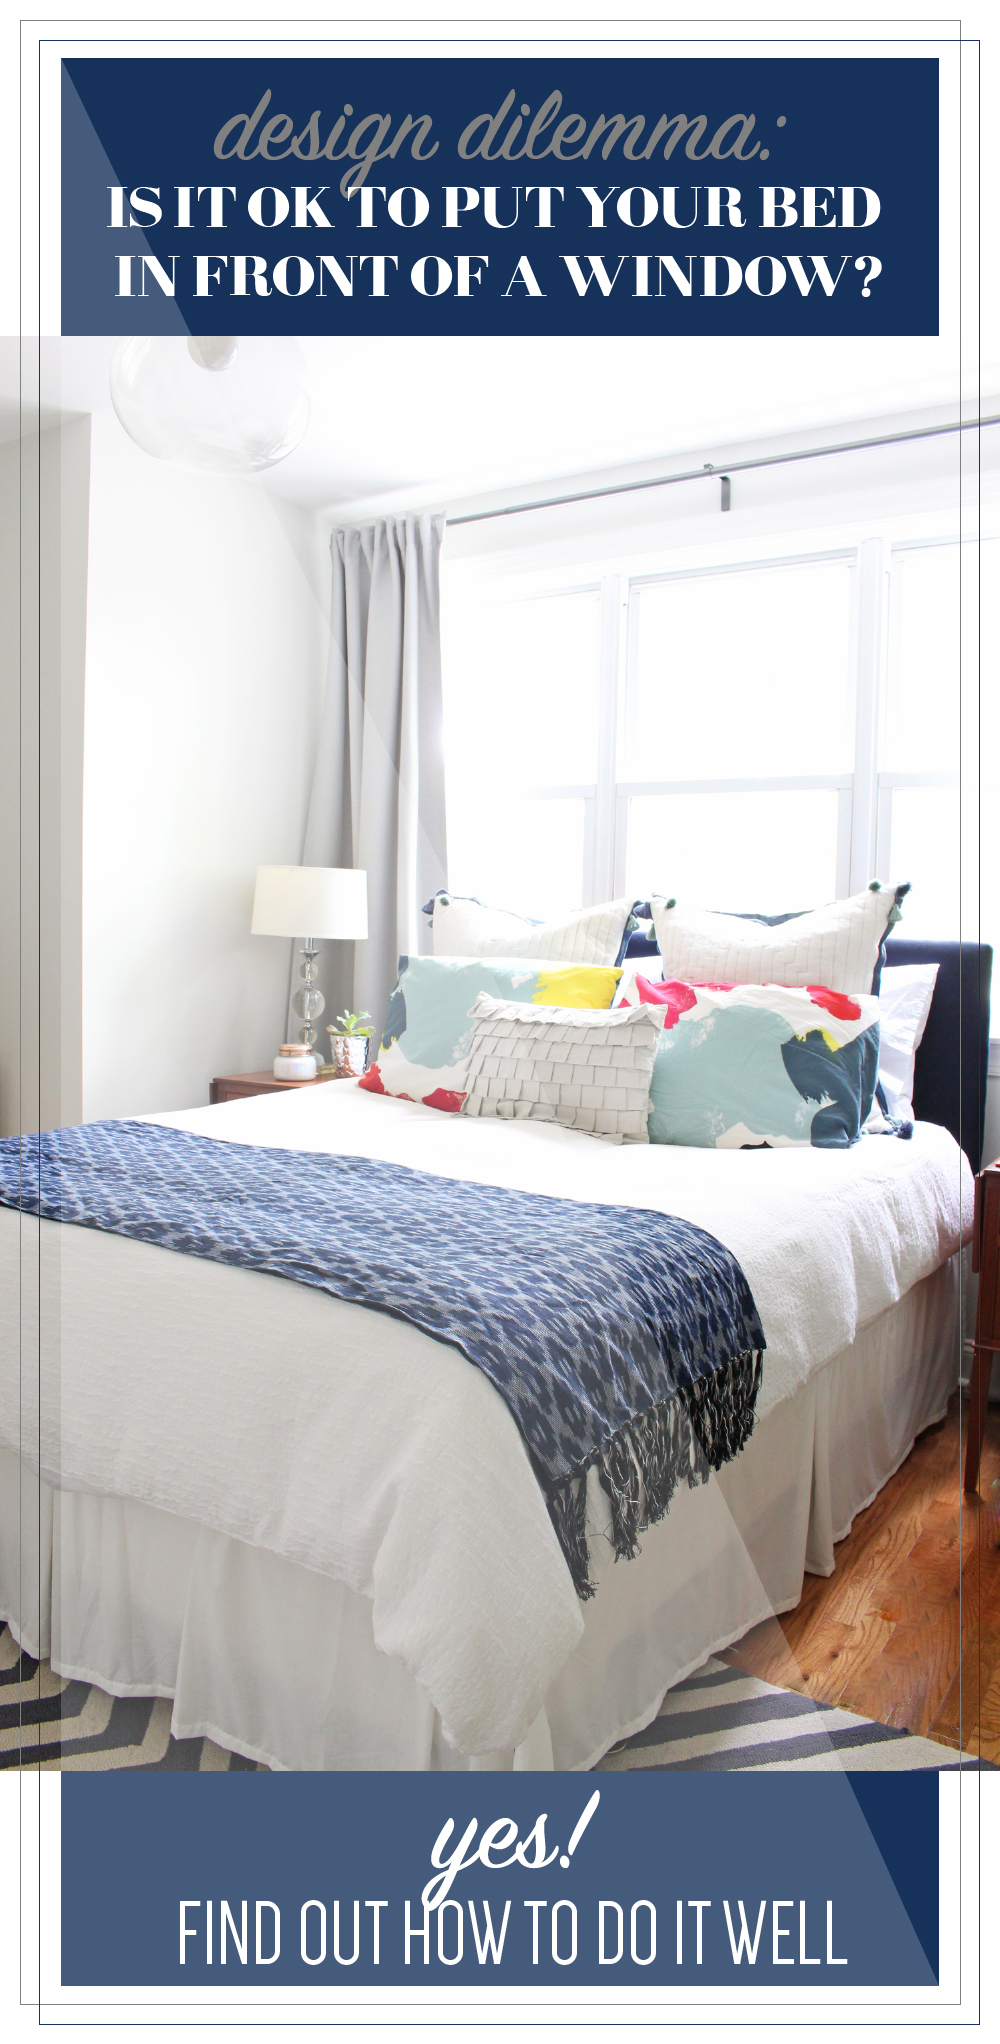 Yes, you CAN put a bed in front of a window. Learn how to do it well in this post from Mix & Match Design Company.